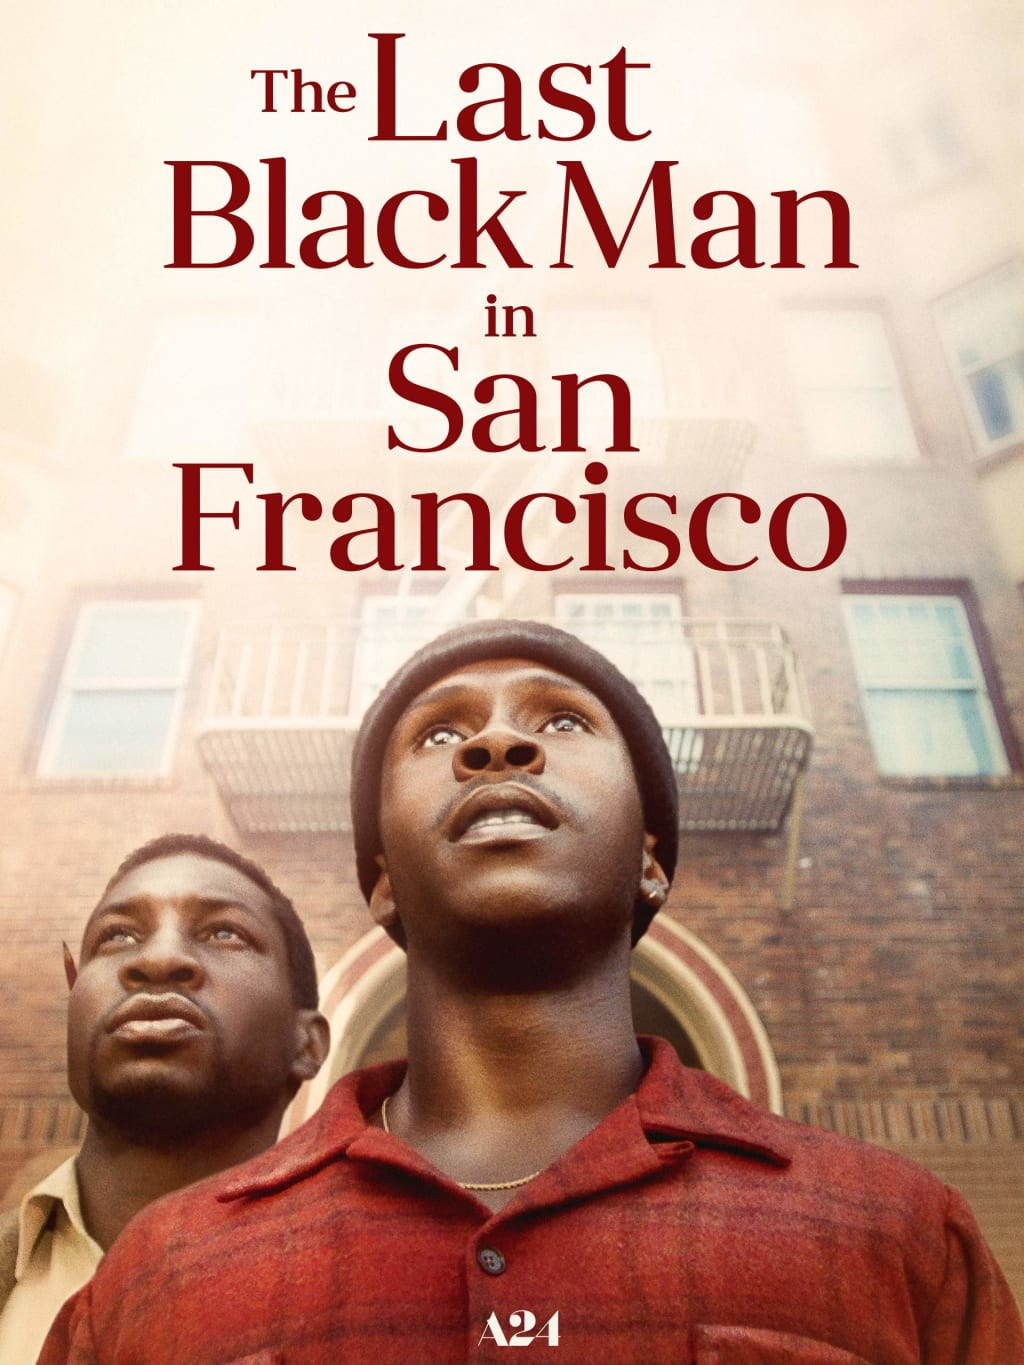 Movie Review: Gentle, Sweet, Thoughtful—'The Last Black Man in San Francisco'